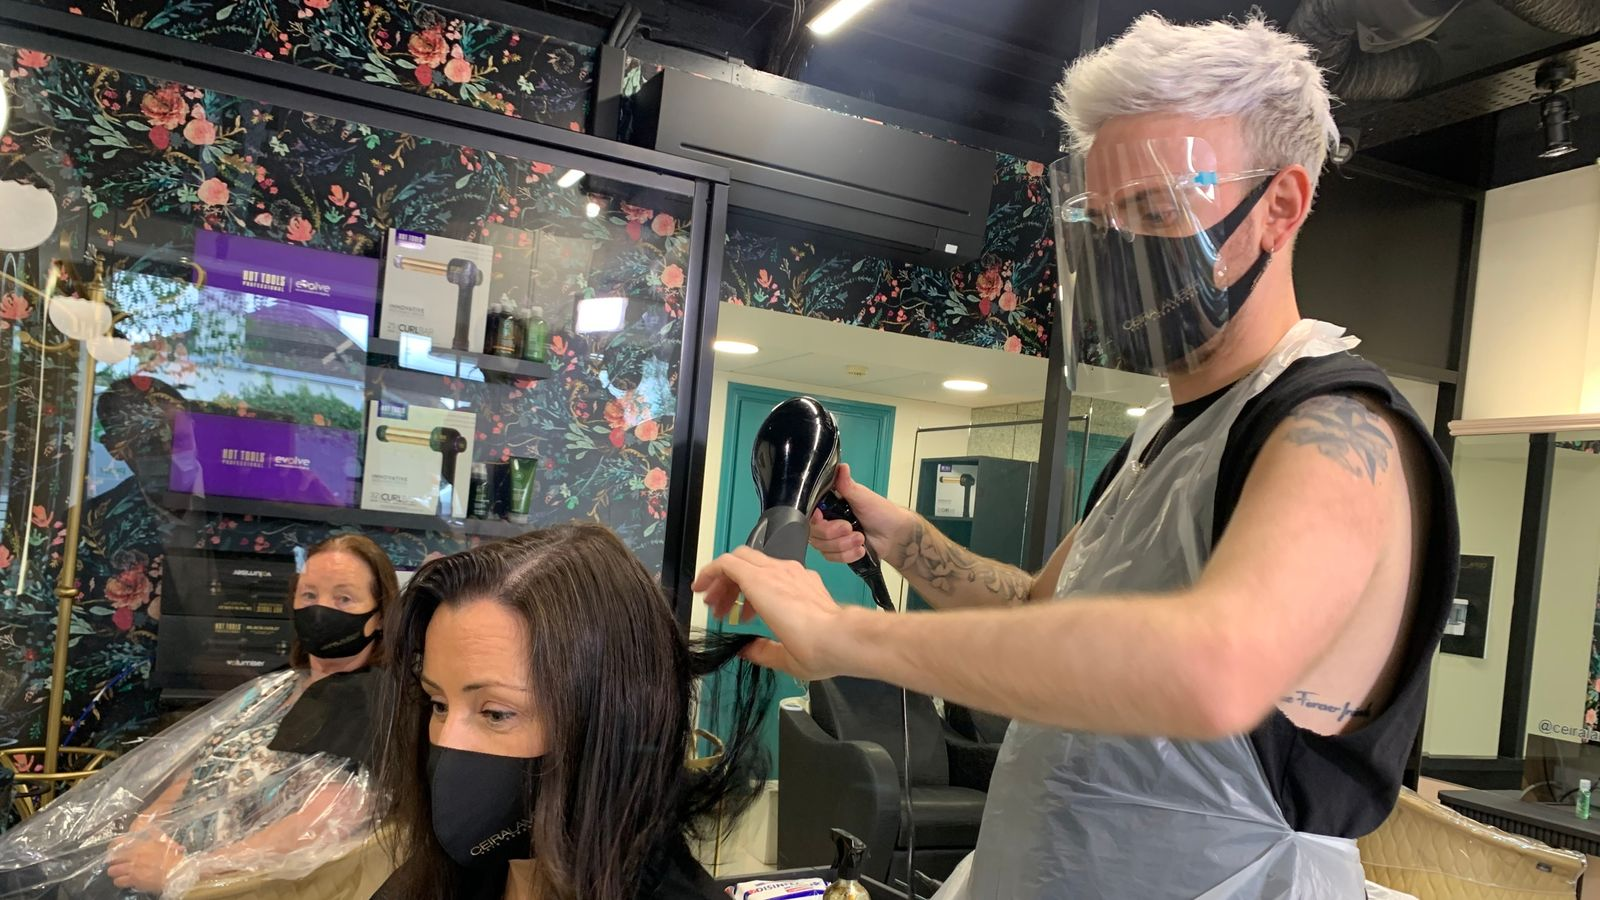 Coronavirus: Hairdressers reopen and gatherings of up to 50 people now allowed in Ireland | World News